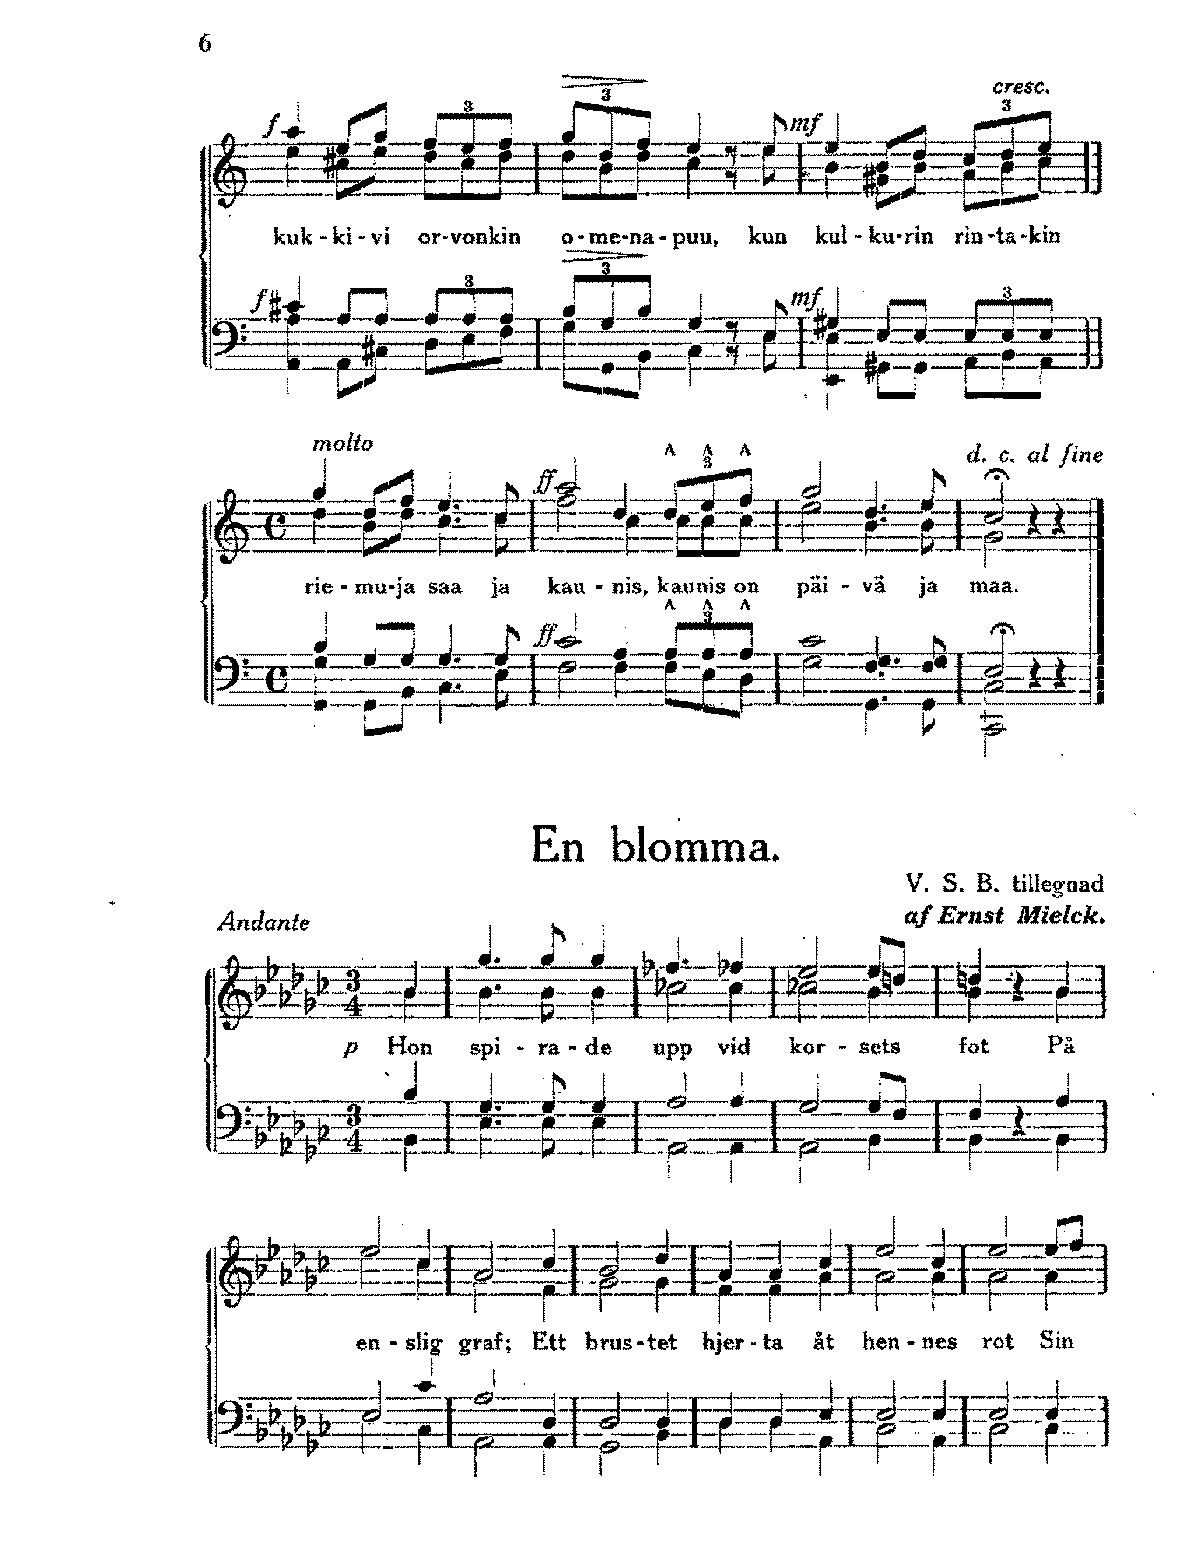 Mielck - Choir works 'En blomma', 'Morgenlied', 'Stjernorna', 'Wanderlied' (1897).pdf